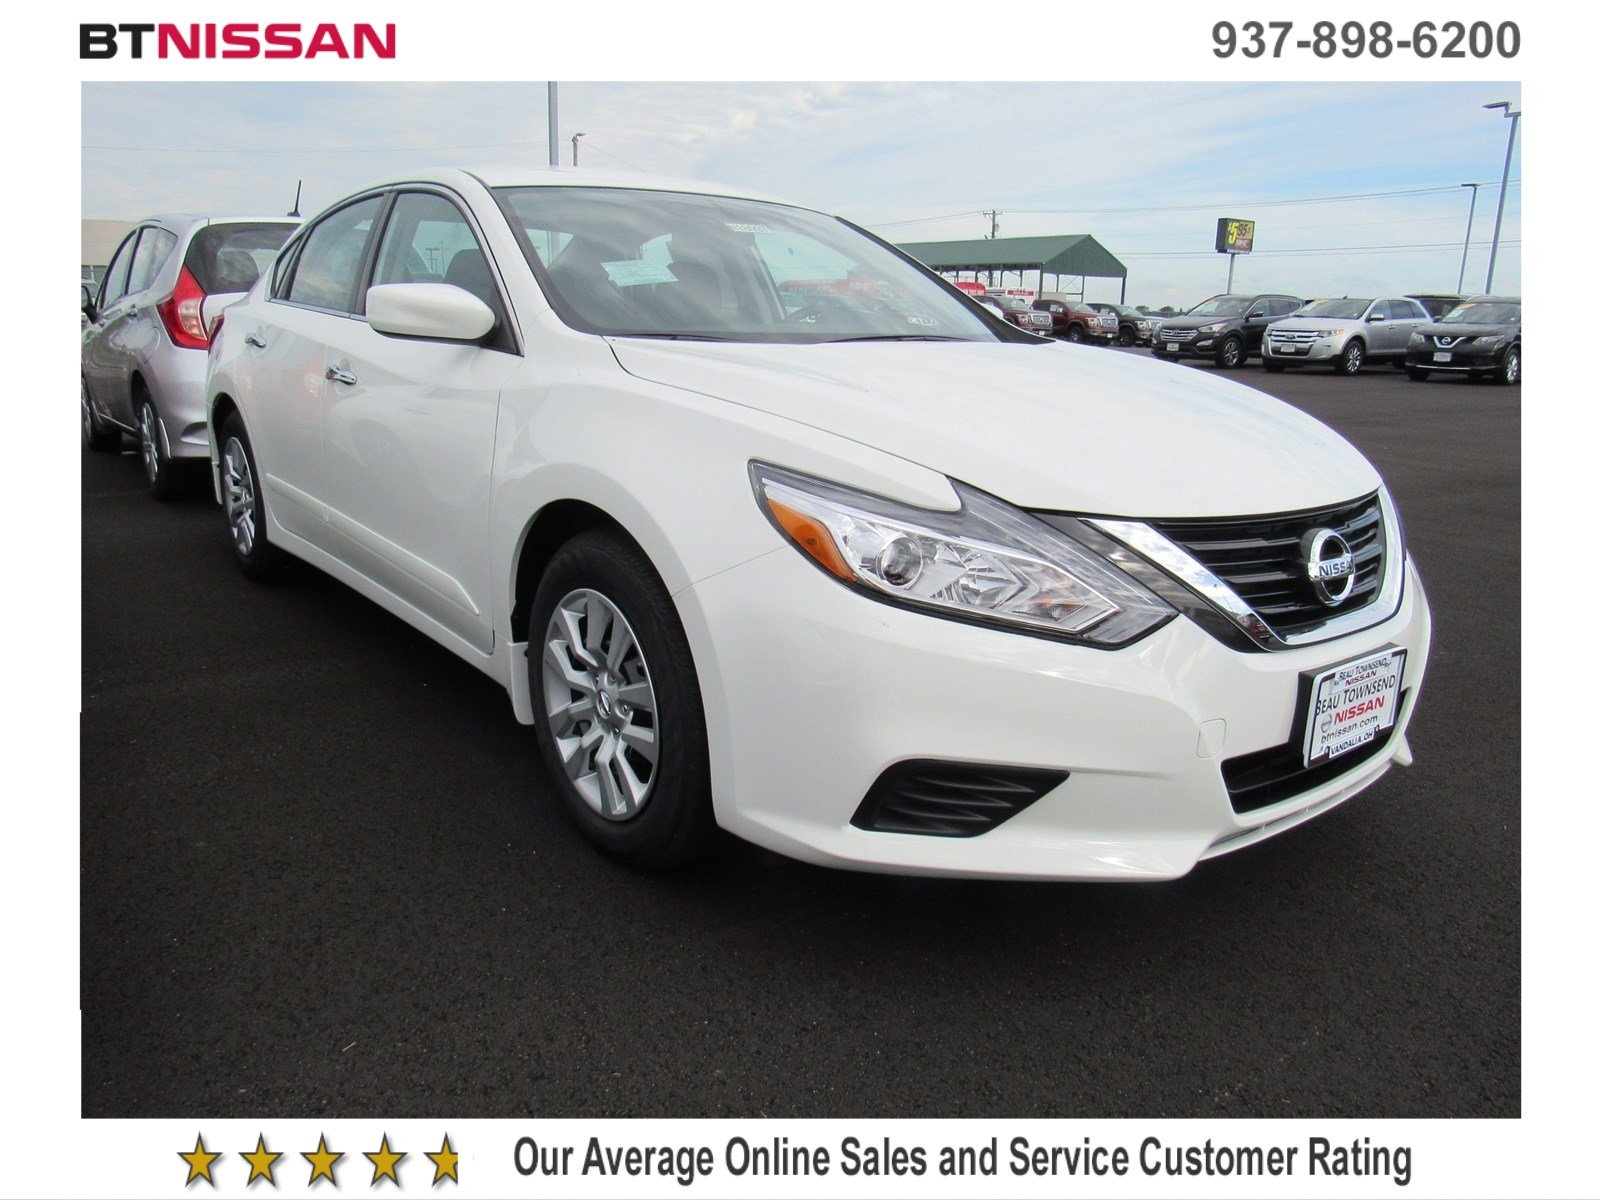 New 2018 Nissan Altima 2 5 S 4dr Car in Vandalia N